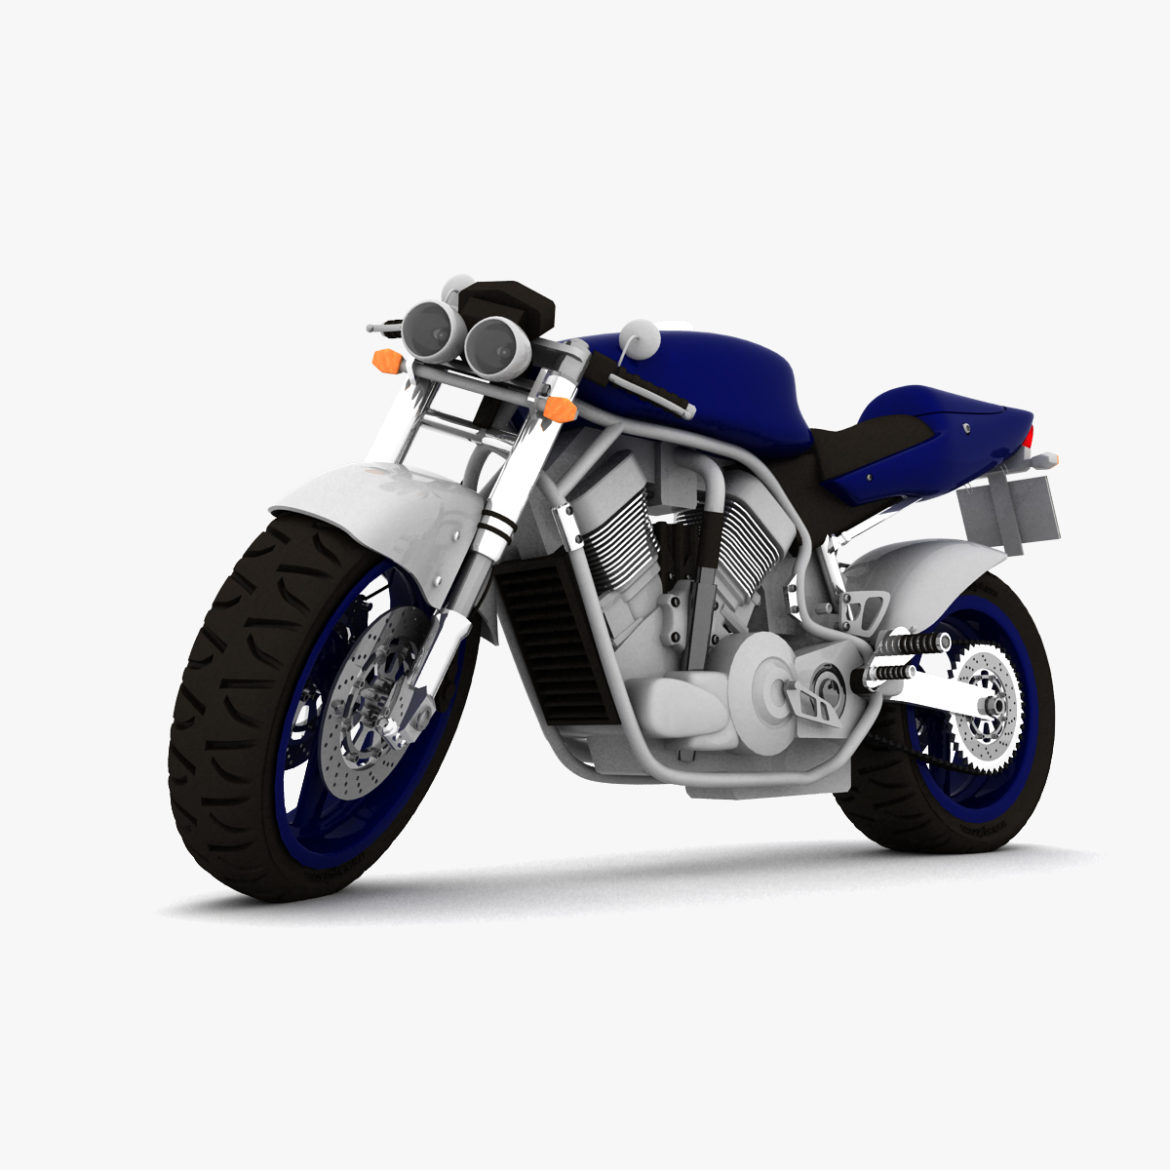 suzuki street fighter motorcycle 3d model 3ds max fbx obj 293872